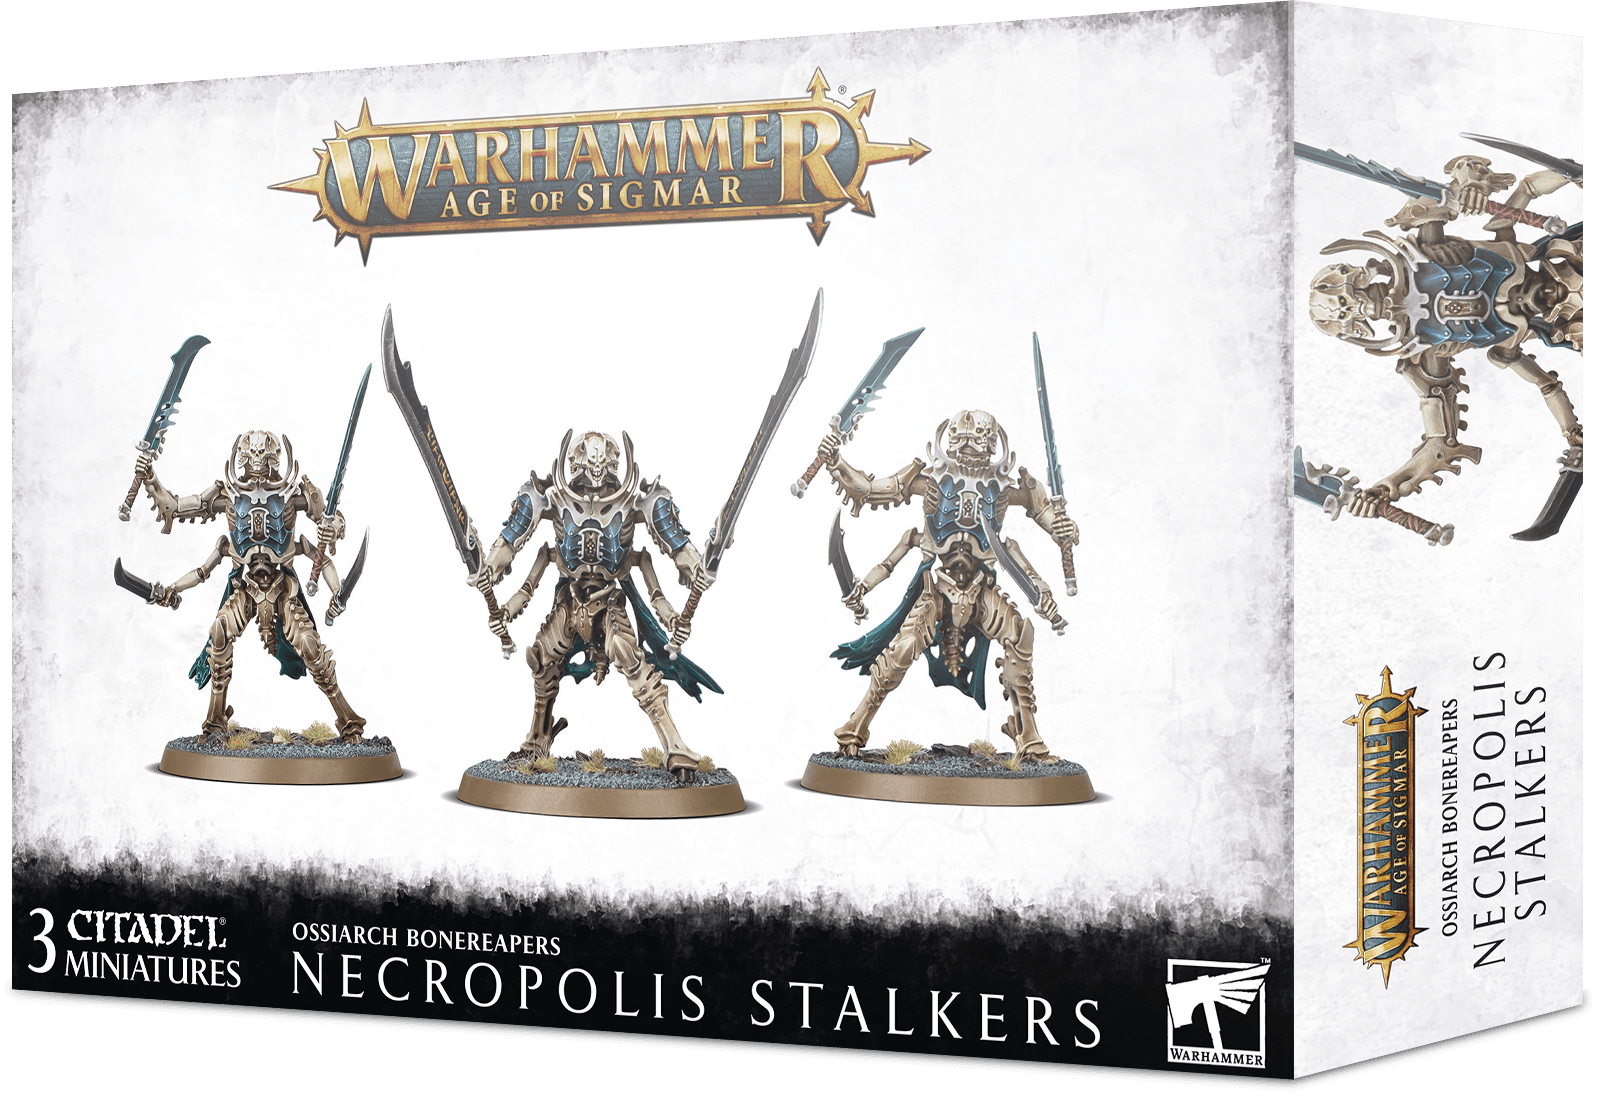 Warhammer Age Of Sigmar: Ossiarch Bonereapers: NECROPOLIS STALKERS